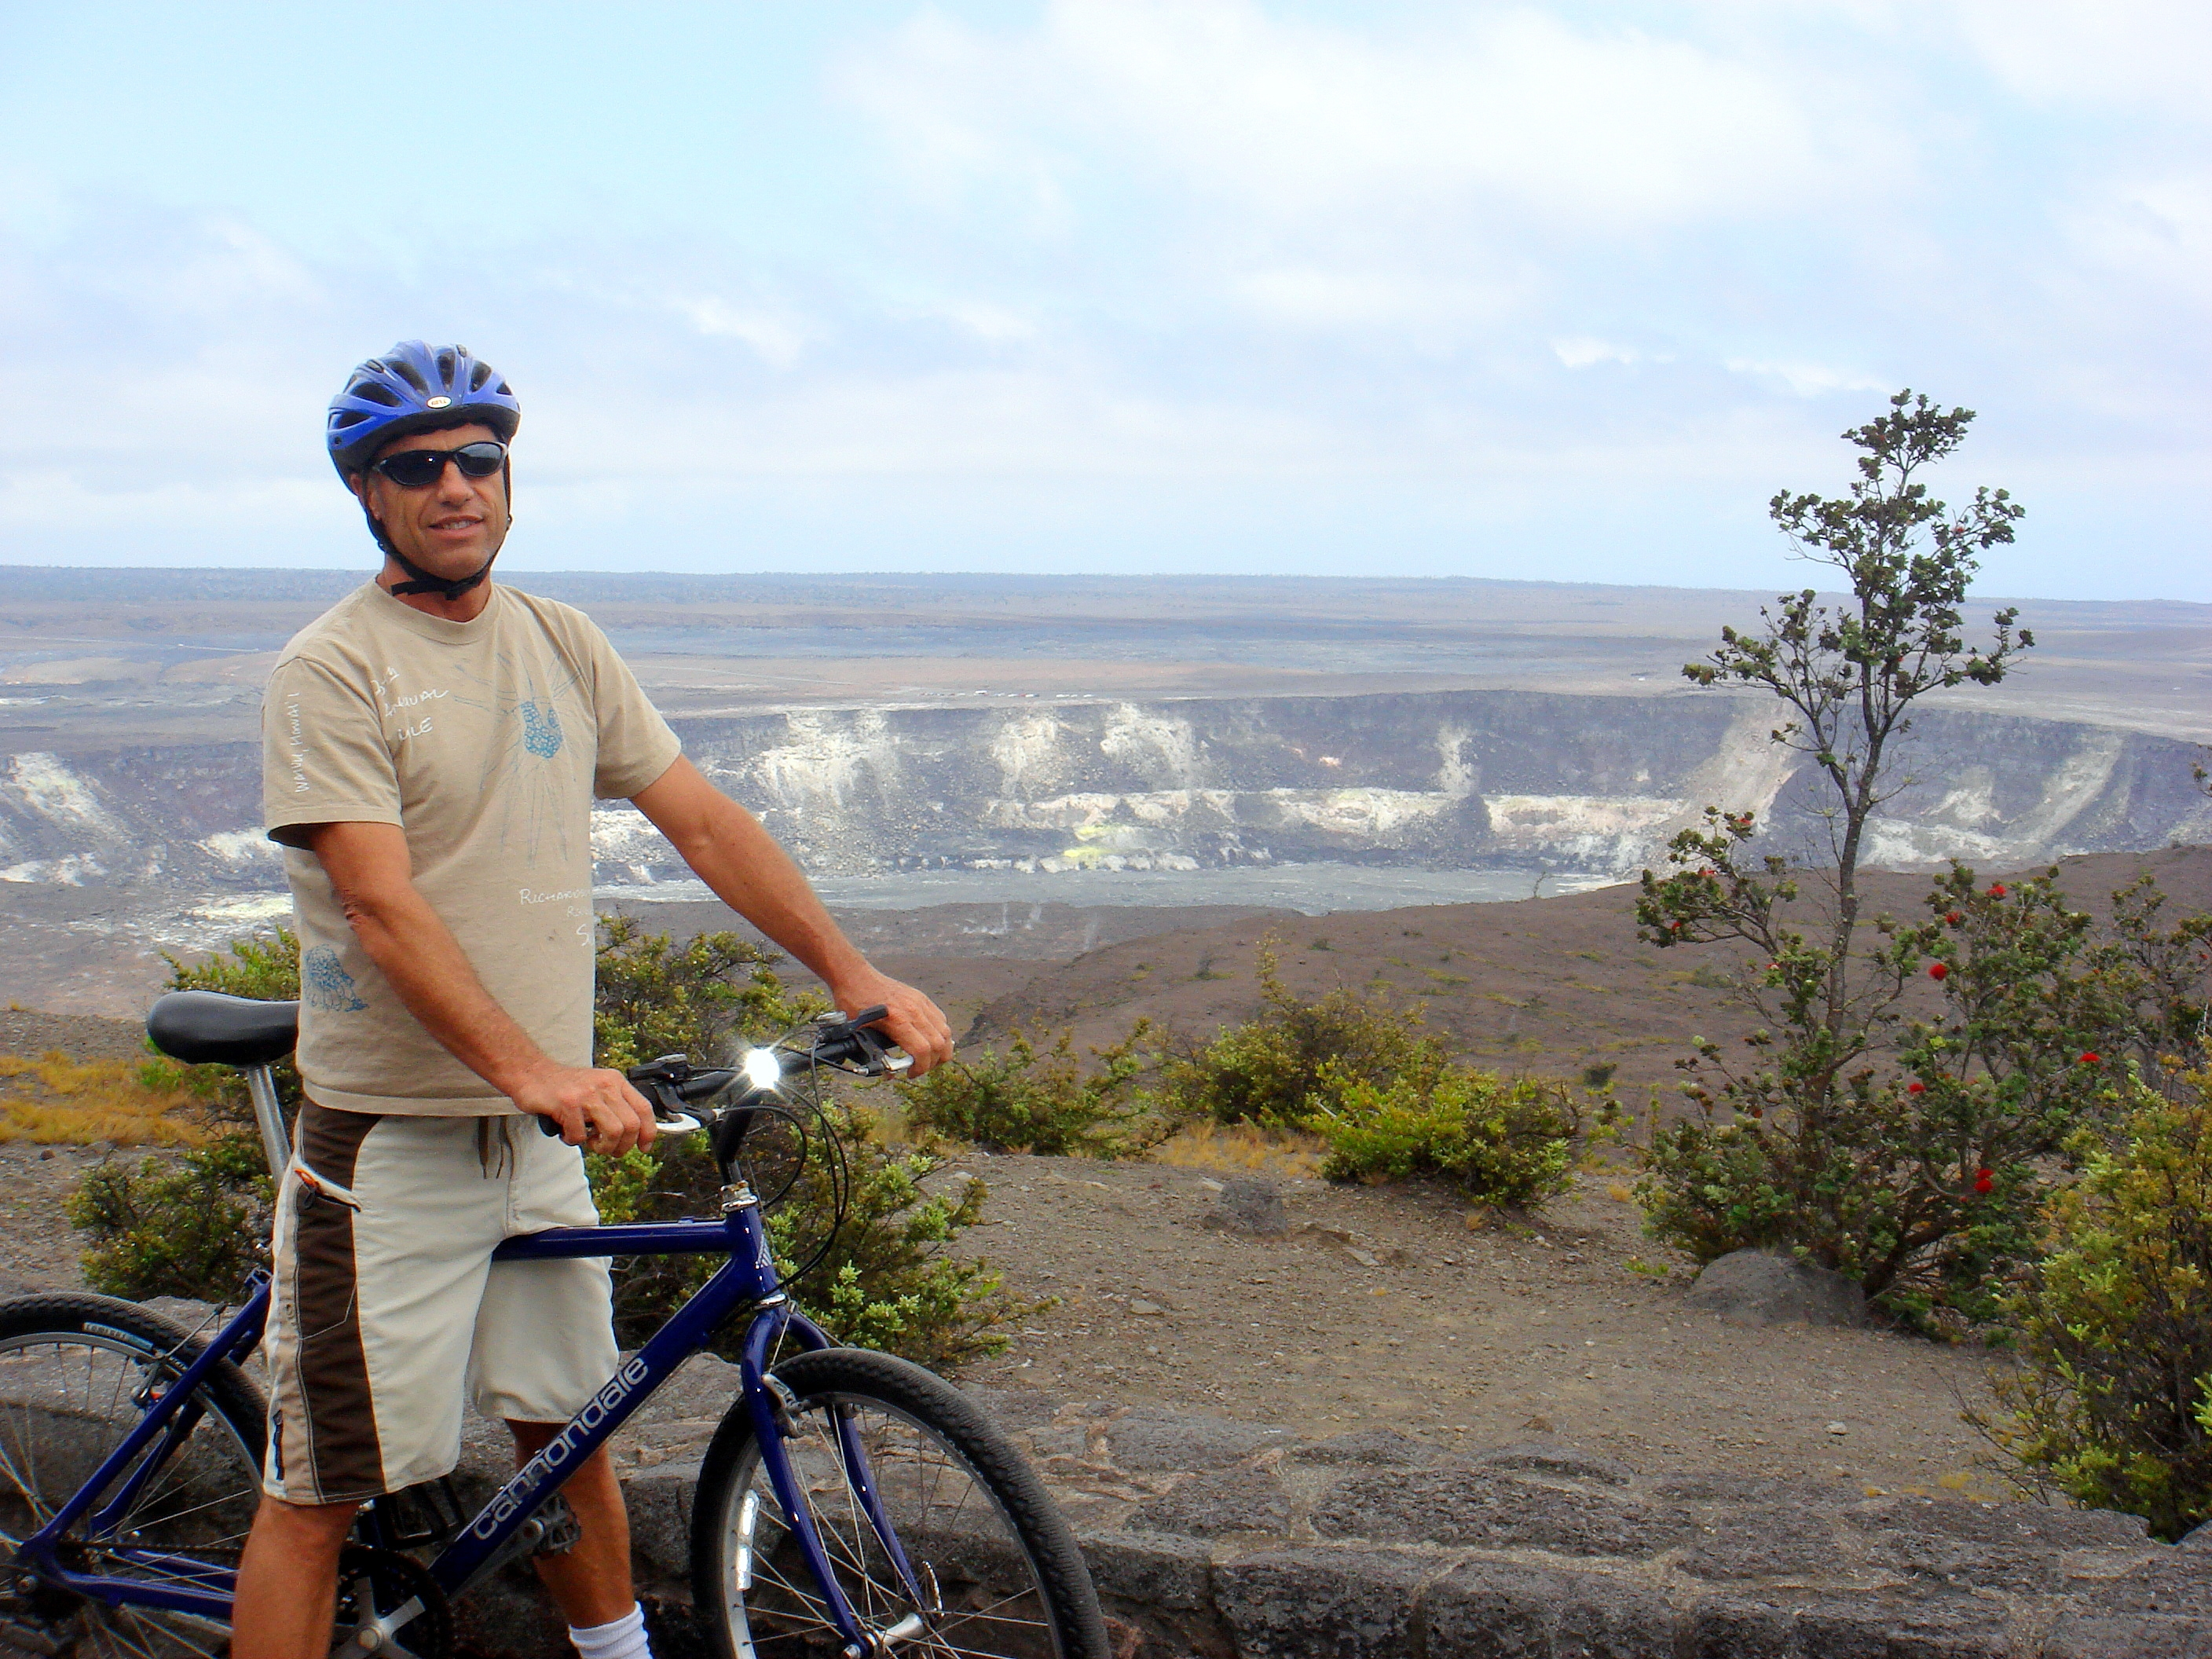 Bike Kilauea Volcano & Wine Tasting Tour